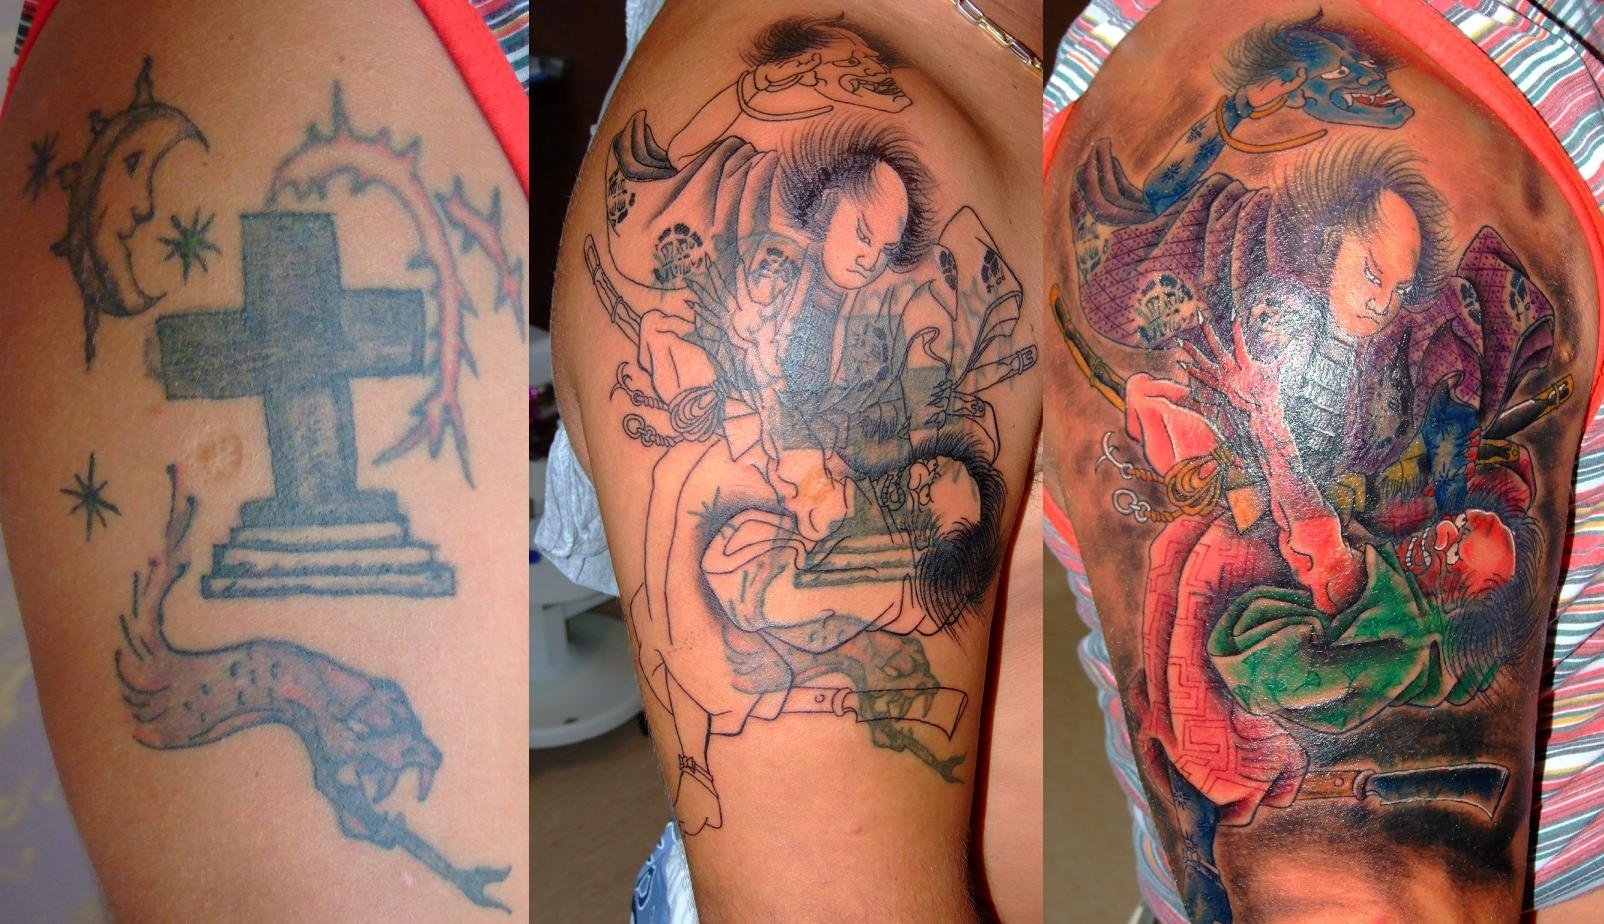 10 Unique Tattoo Ideas For Cover Up cover up tattoos tattoo ideas 8 2020